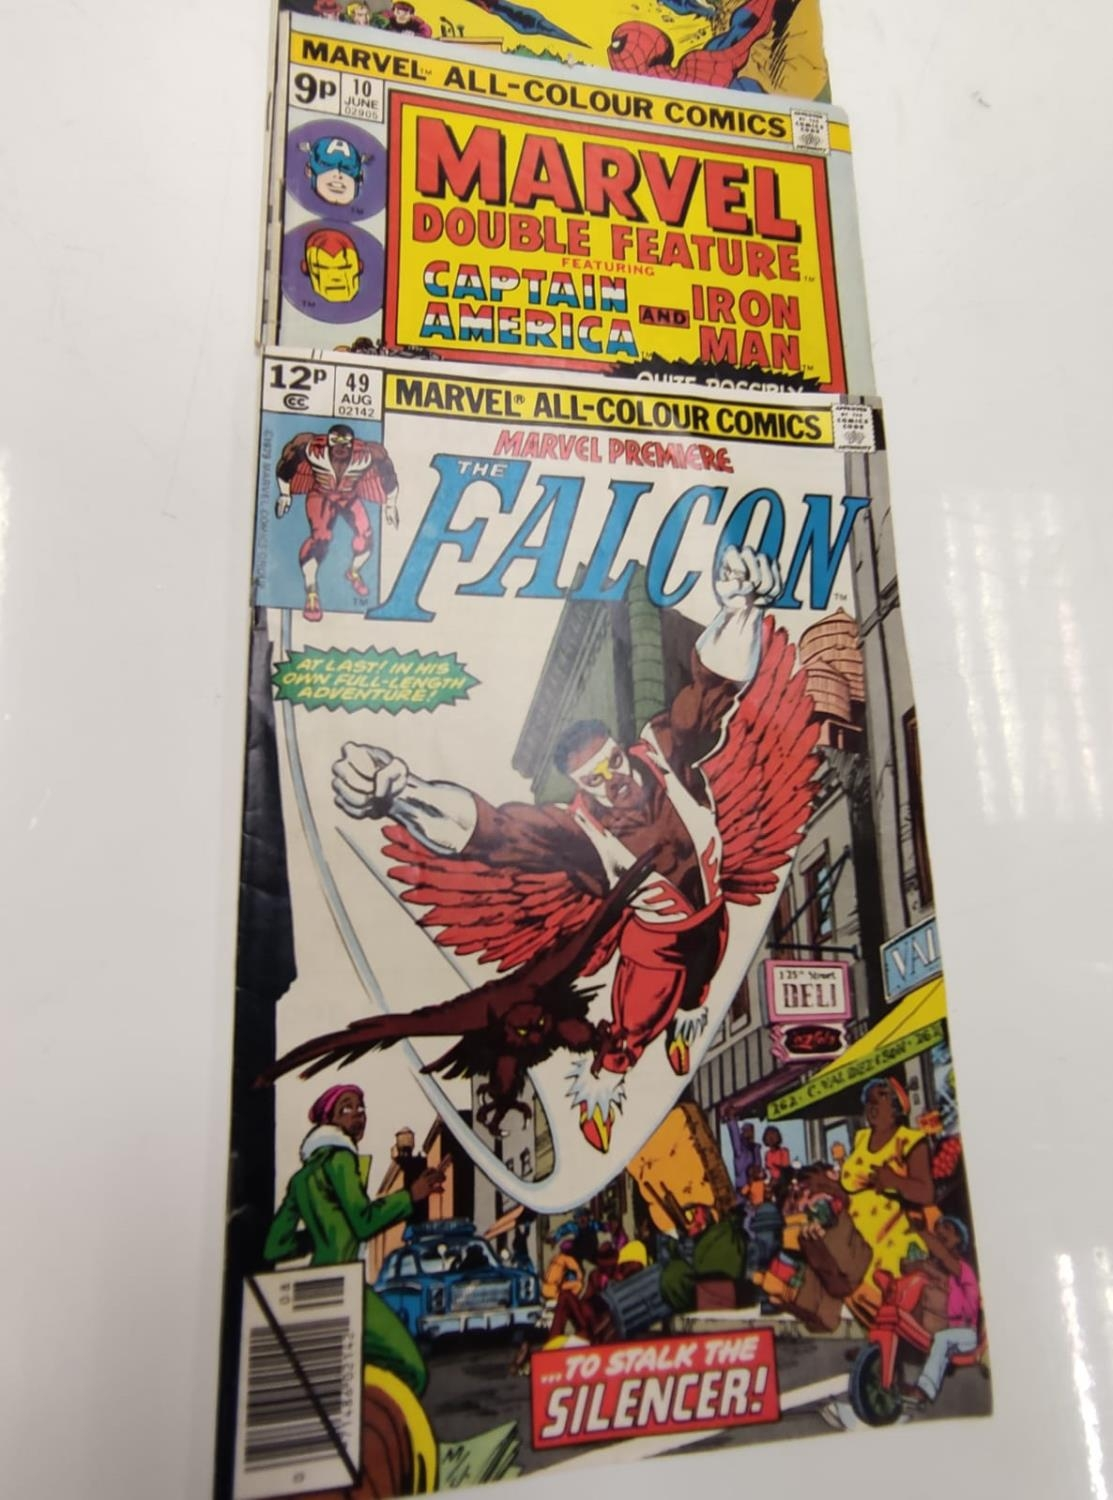 3 Eclectic Vintage Marvel Comics, including the rare 'Peter Parker, The Spectacular Spider-Man'. - Image 6 of 8